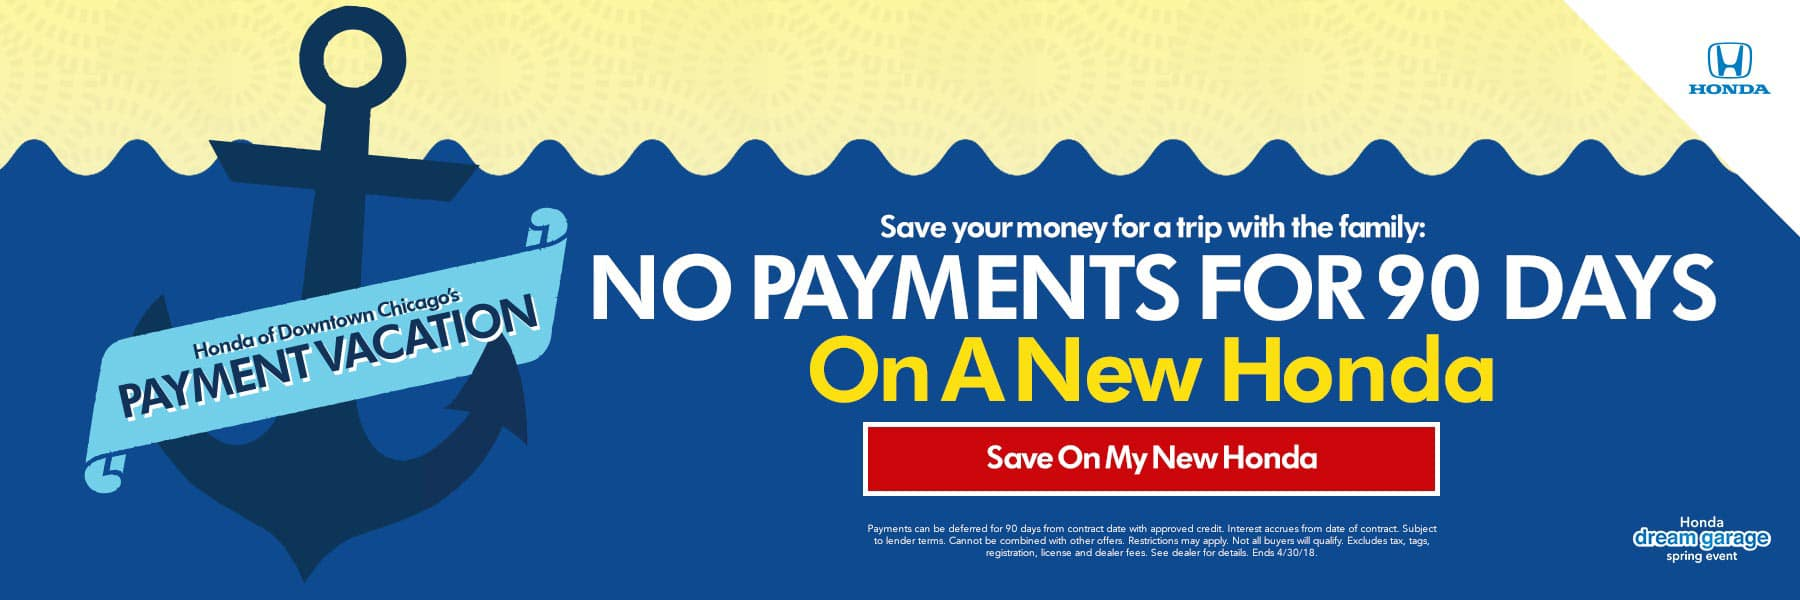 Honda Of Downtown Chicagos Payment Vacation - Save your money for a trip with the family - No payments for 90 days on a new Honda - Save On My New Honda - offer expires 4/30/18